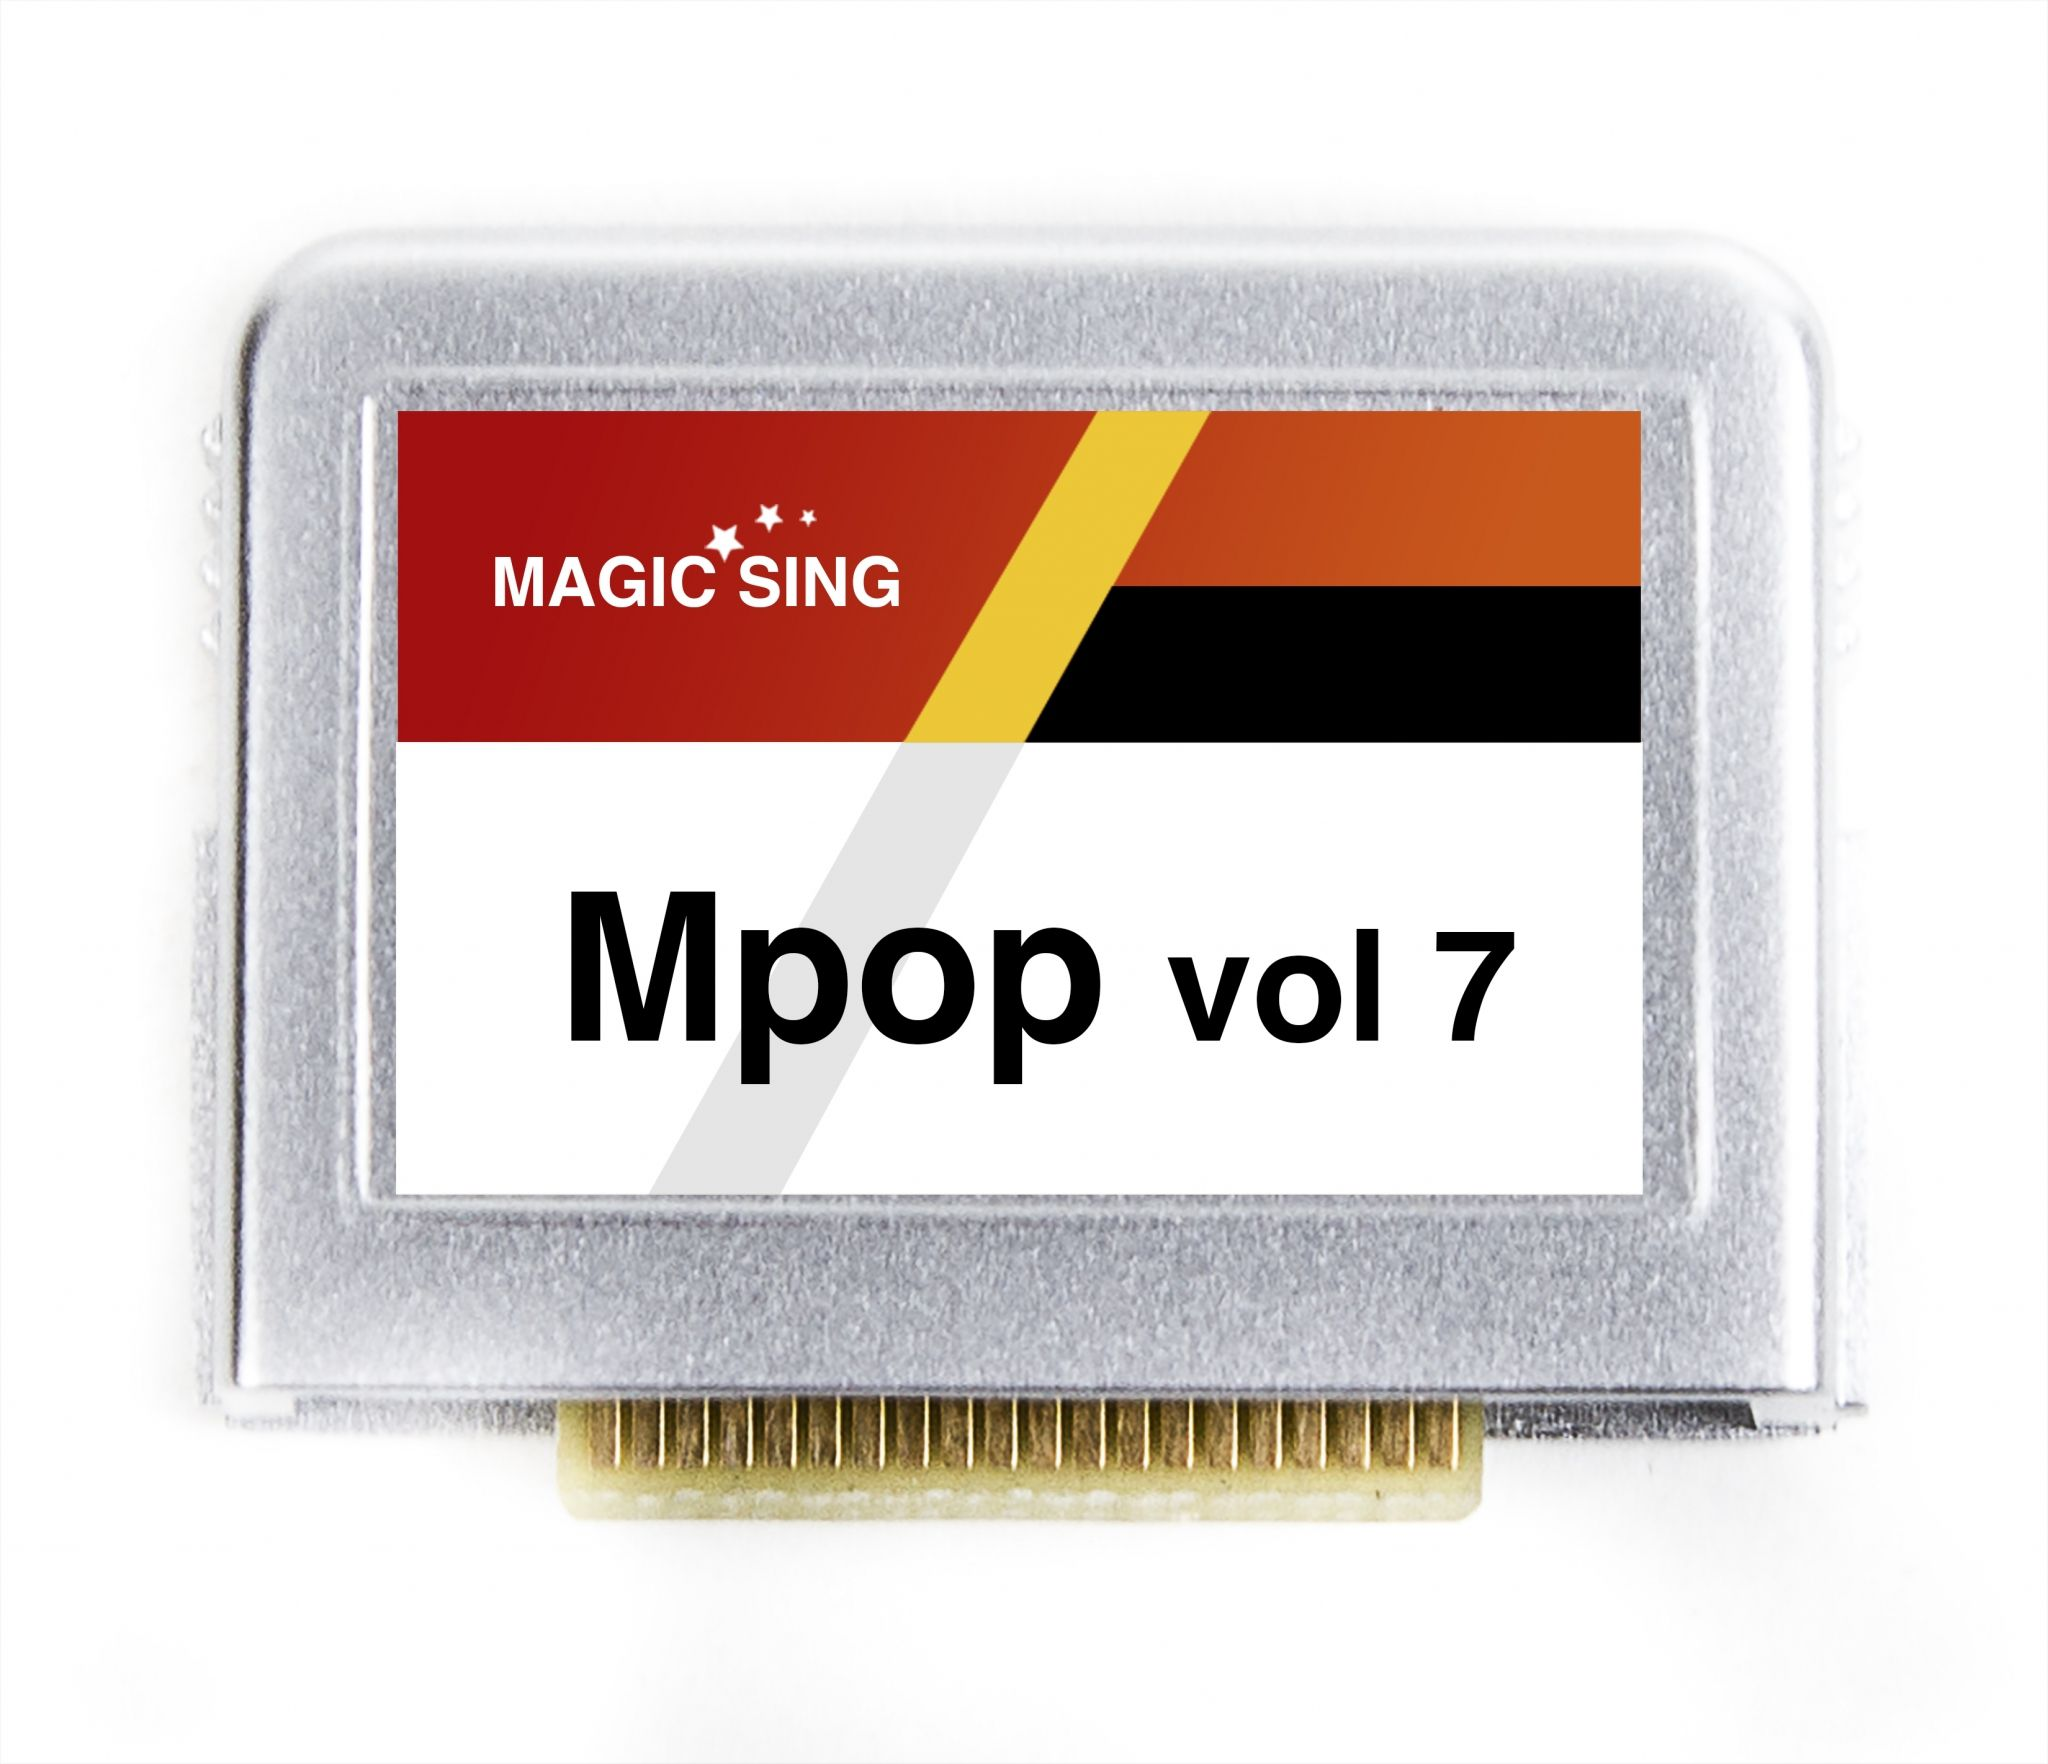 Mpop vol 7 (RnB/Rap/Motown/Latin)